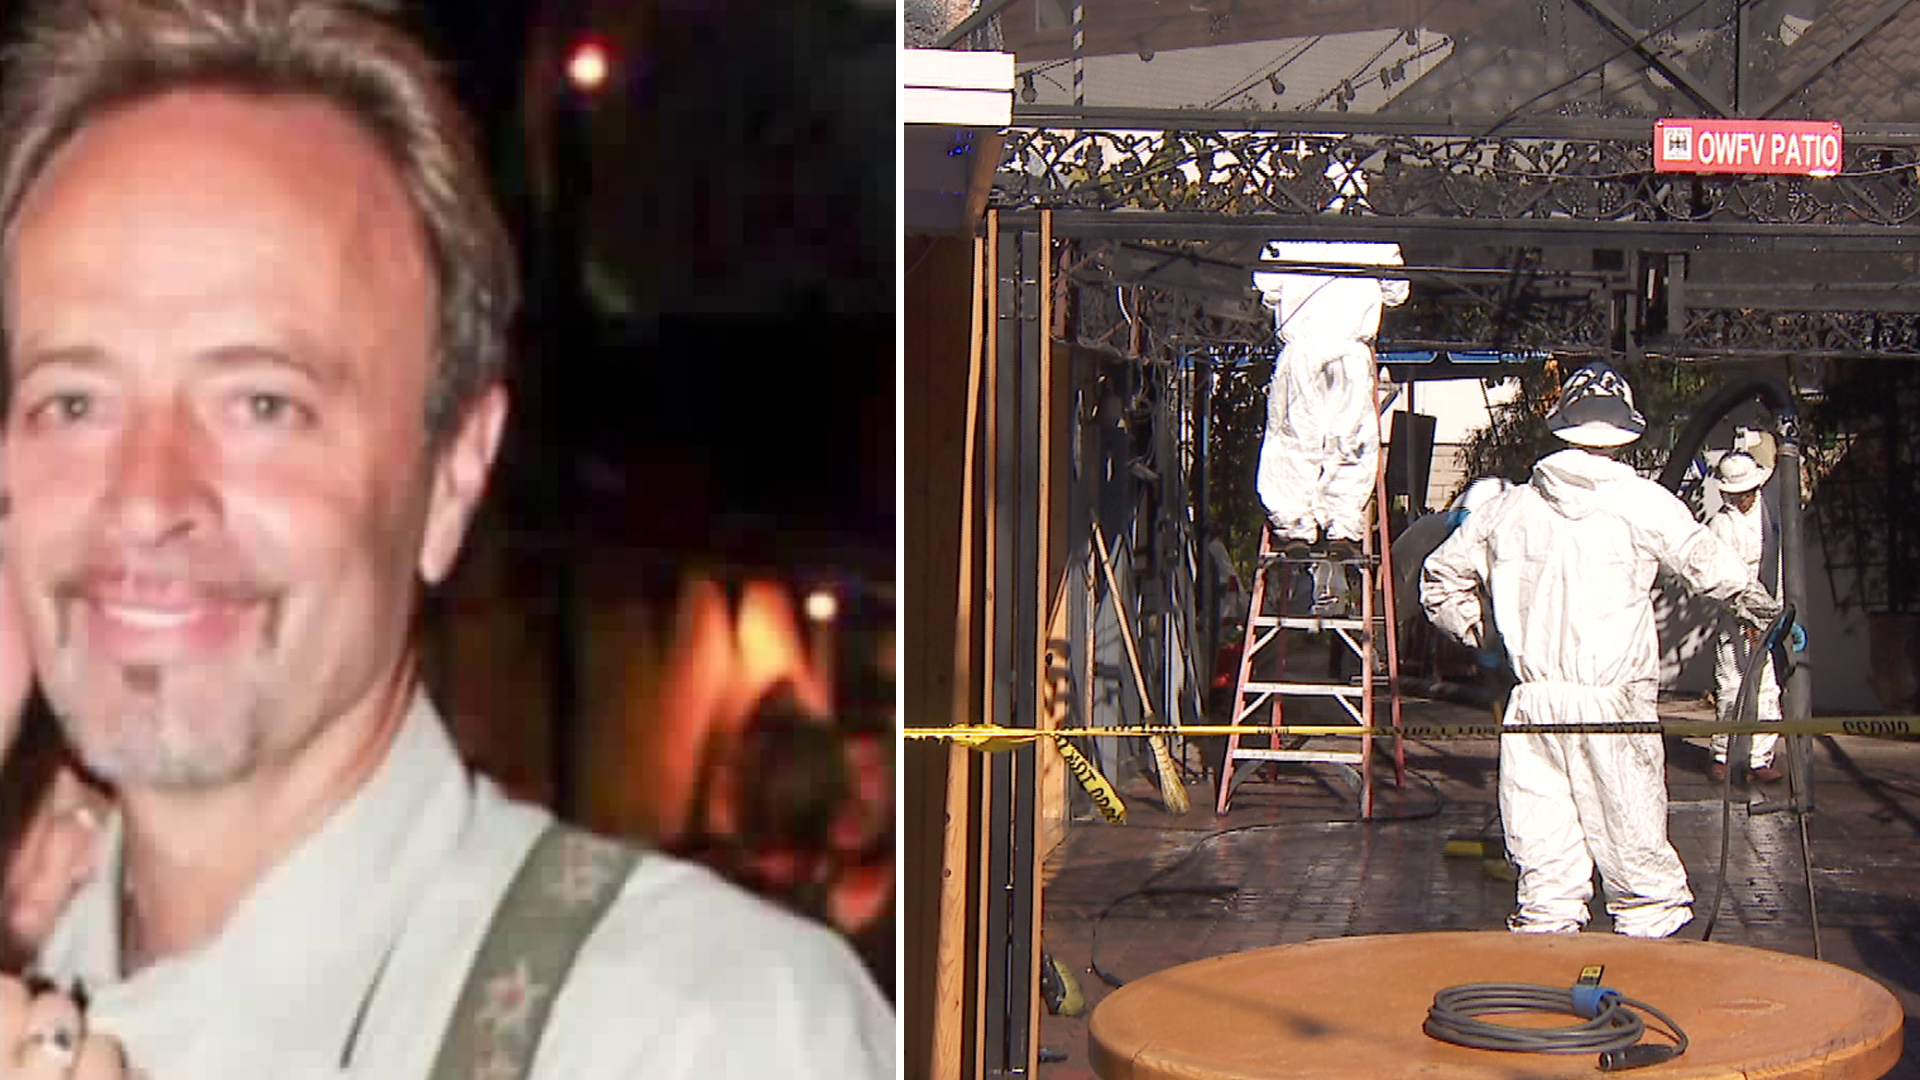 Bernie Bischof is seen in an undated photo provided by his family. On the right, crews clean up the aftermath of an explosion that rattled an Oktoberfest celebration at Huntington Beach. (Credit: KTLA)